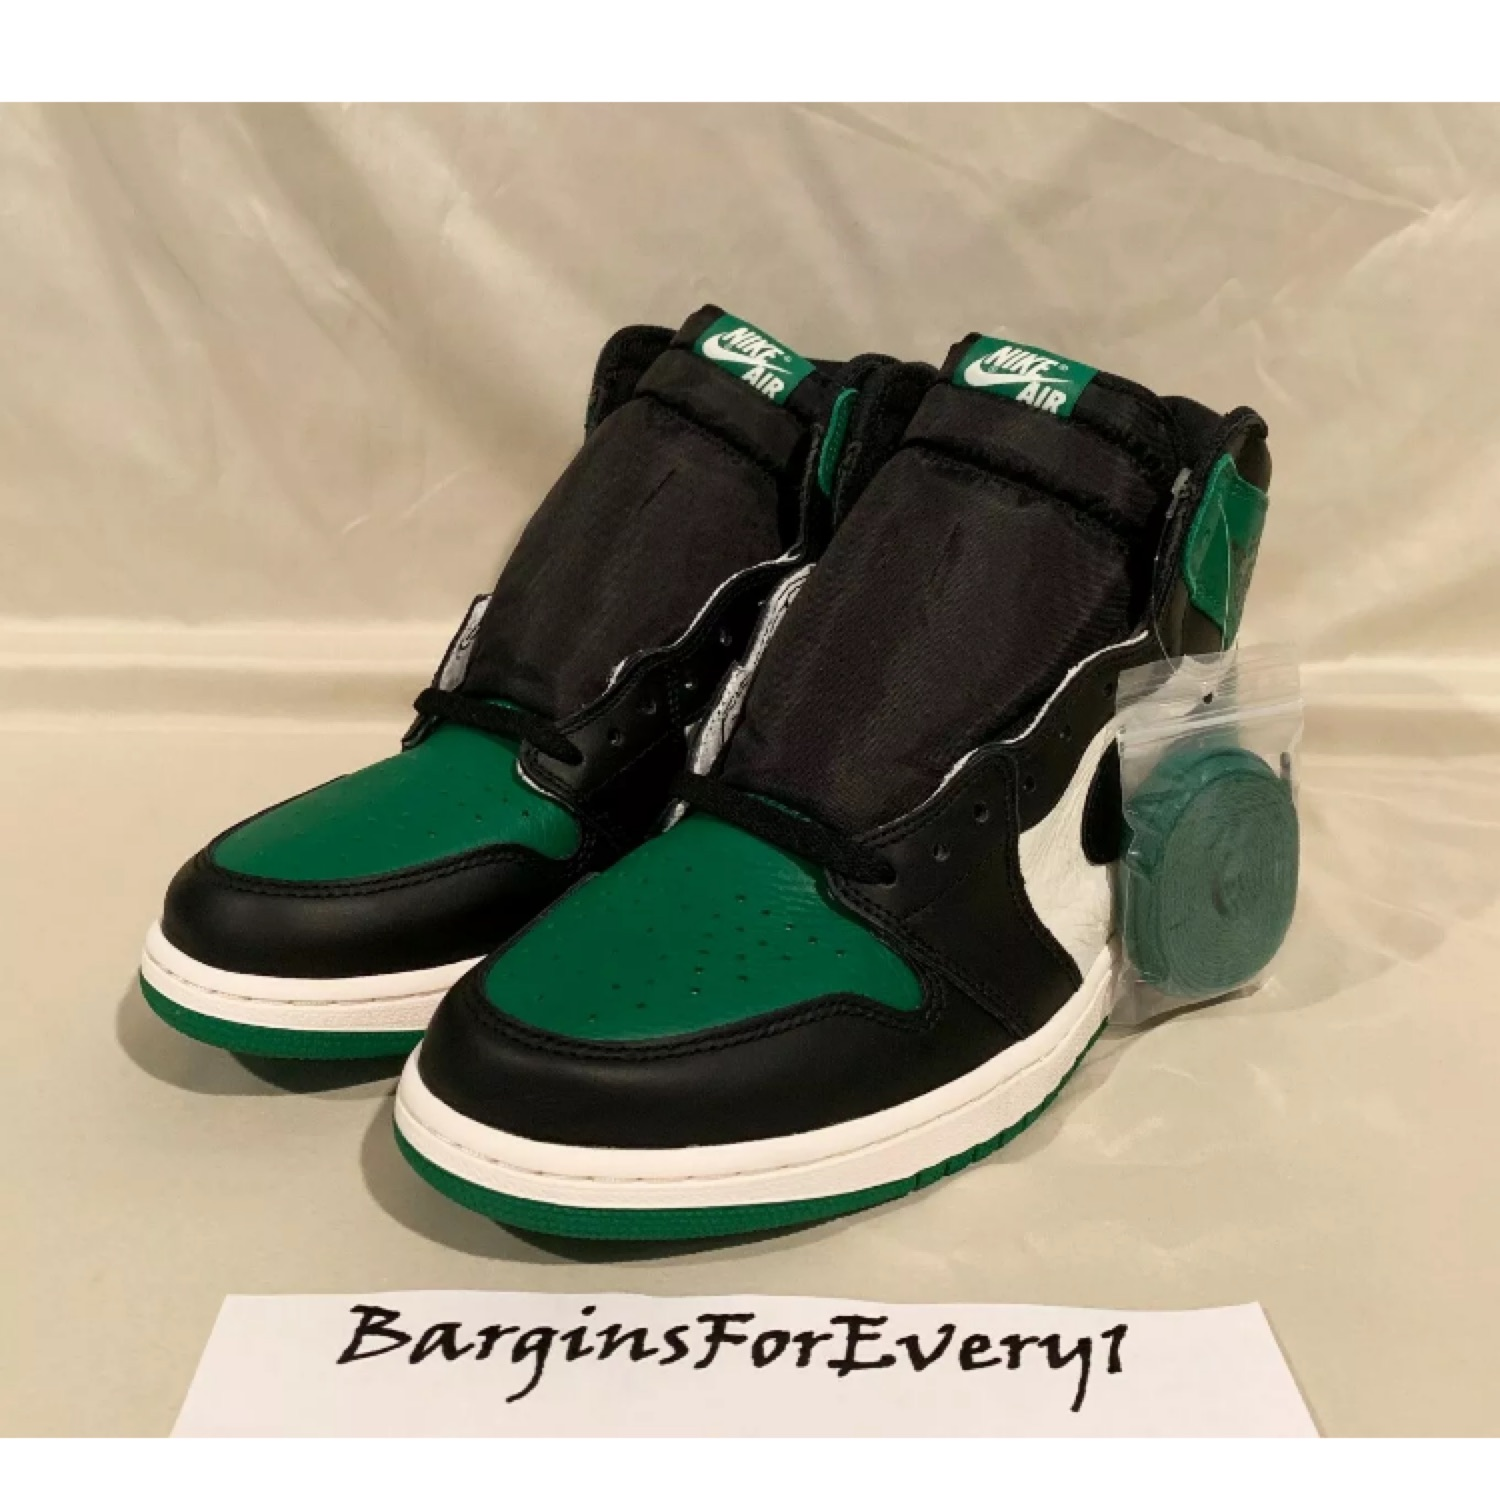 reputable site 084b6 e6887 Air Jordan 1 Retro High Og - Pine Green